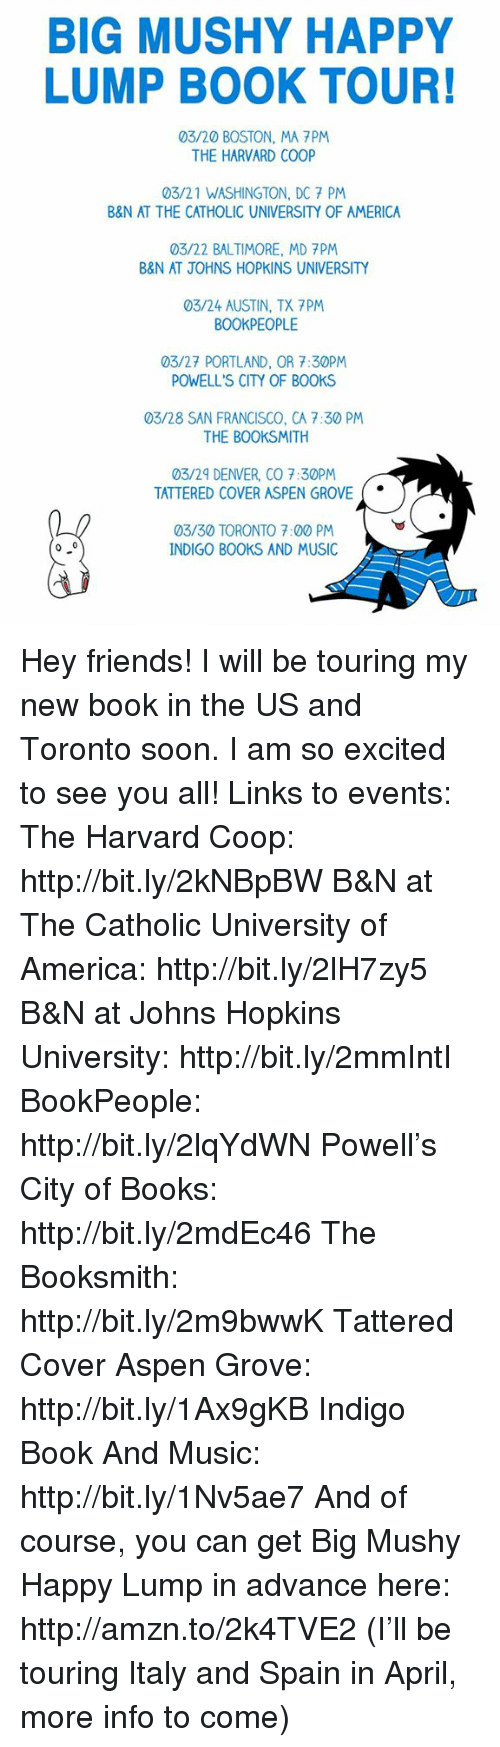 Excition: BIG MUSHY HAPPY  LUMP BOOK TOUR!  03/20 BOSTON, MA PM  THE HARVARD COOP  03/21 WASHINGTON, DC 7 PM  B&N AT THE CATHOLIC UNIVERSITY OF AMERICA  03/22 BALTIMORE, MD 7PM  B&N AT JOHNS HOPKINS UNIVERSITY  03/24 AUSTIN, TX 7PM  BOOKPEOPLE  03/27 PORTLAND, OR 7:30PM  POWELL'S CITY OF BOOKS  03/28 SAN FRANCISCO, CA 7:30 PM  THE BOOKSMITH  03/29 DENVER, CO 7:30PM  TATTERED COVER ASPEN GROVE  03/30 TORONTO 7:00 PM  0 0  INDIGO BOOKS AND MUSIC Hey friends! I will be touring my new book in the US and Toronto soon. I am so excited to see you all!  Links to events:  The Harvard Coop: http://bit.ly/2kNBpBW  B&N at The Catholic University of America: http://bit.ly/2lH7zy5  B&N at Johns Hopkins University: http://bit.ly/2mmIntI  BookPeople: http://bit.ly/2lqYdWN  Powell's City of Books: http://bit.ly/2mdEc46  The Booksmith: http://bit.ly/2m9bwwK  Tattered Cover Aspen Grove: http://bit.ly/1Ax9gKB  Indigo Book And Music: http://bit.ly/1Nv5ae7  And of course, you can get Big Mushy Happy Lump in advance here: http://amzn.to/2k4TVE2  (I'll be touring Italy and Spain in April, more info to come)